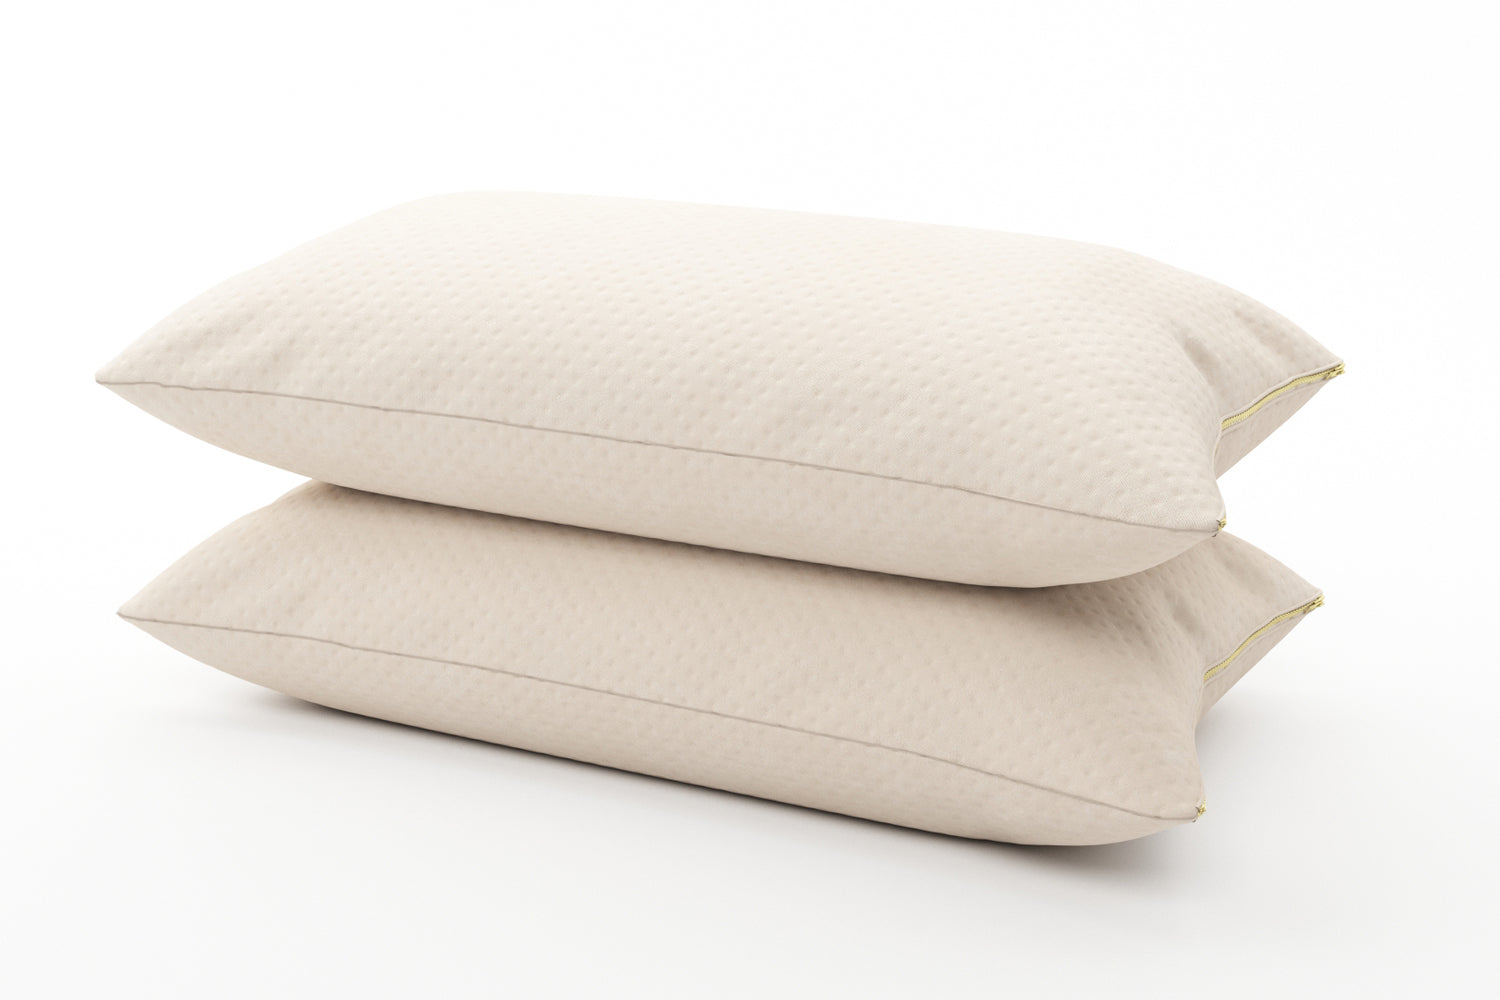 The Crush Organic Shredded Rubber Pillow